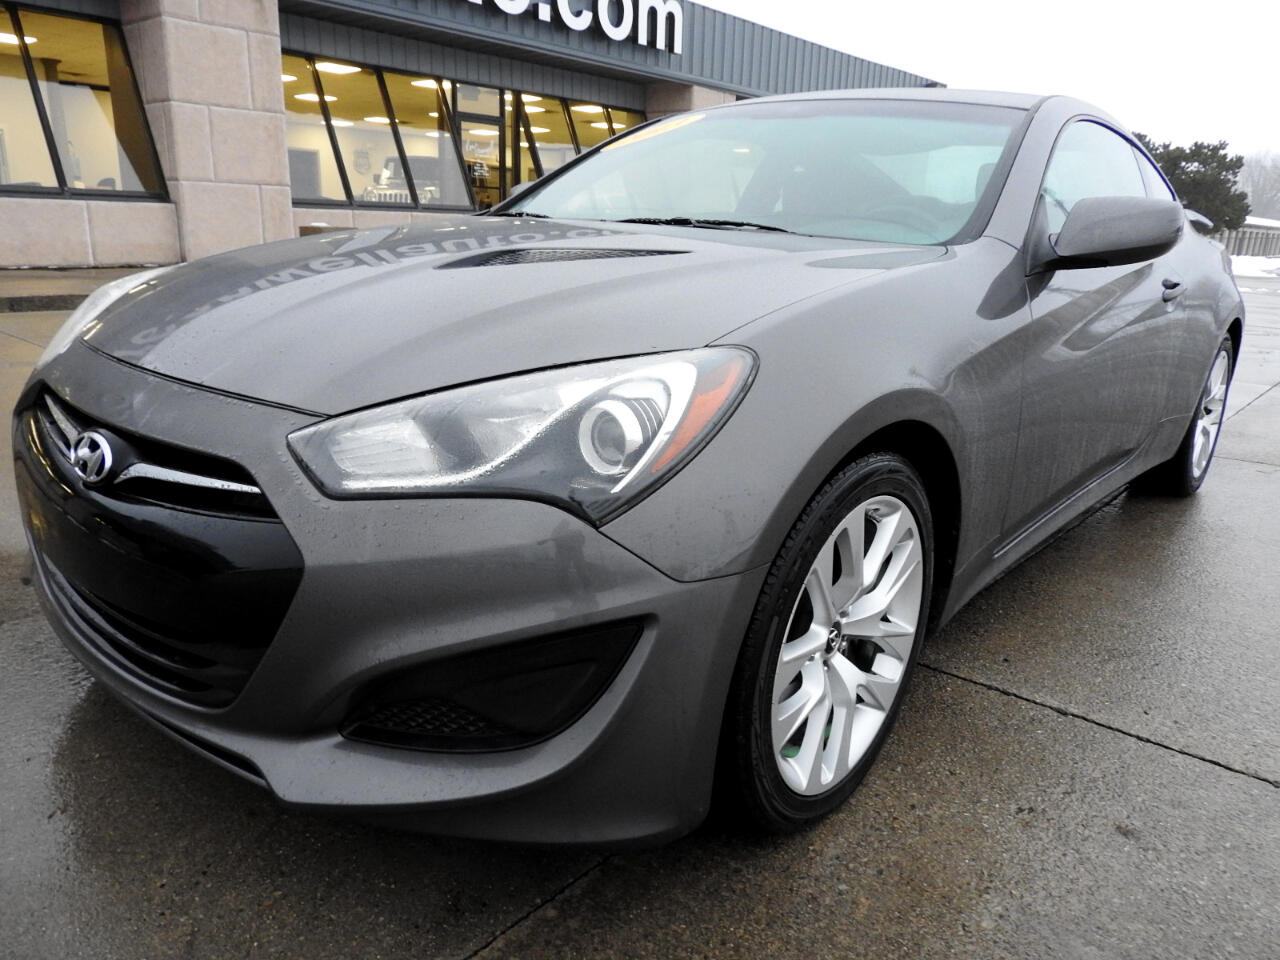 2013 Hyundai Genesis Coupe 2.0T Manual